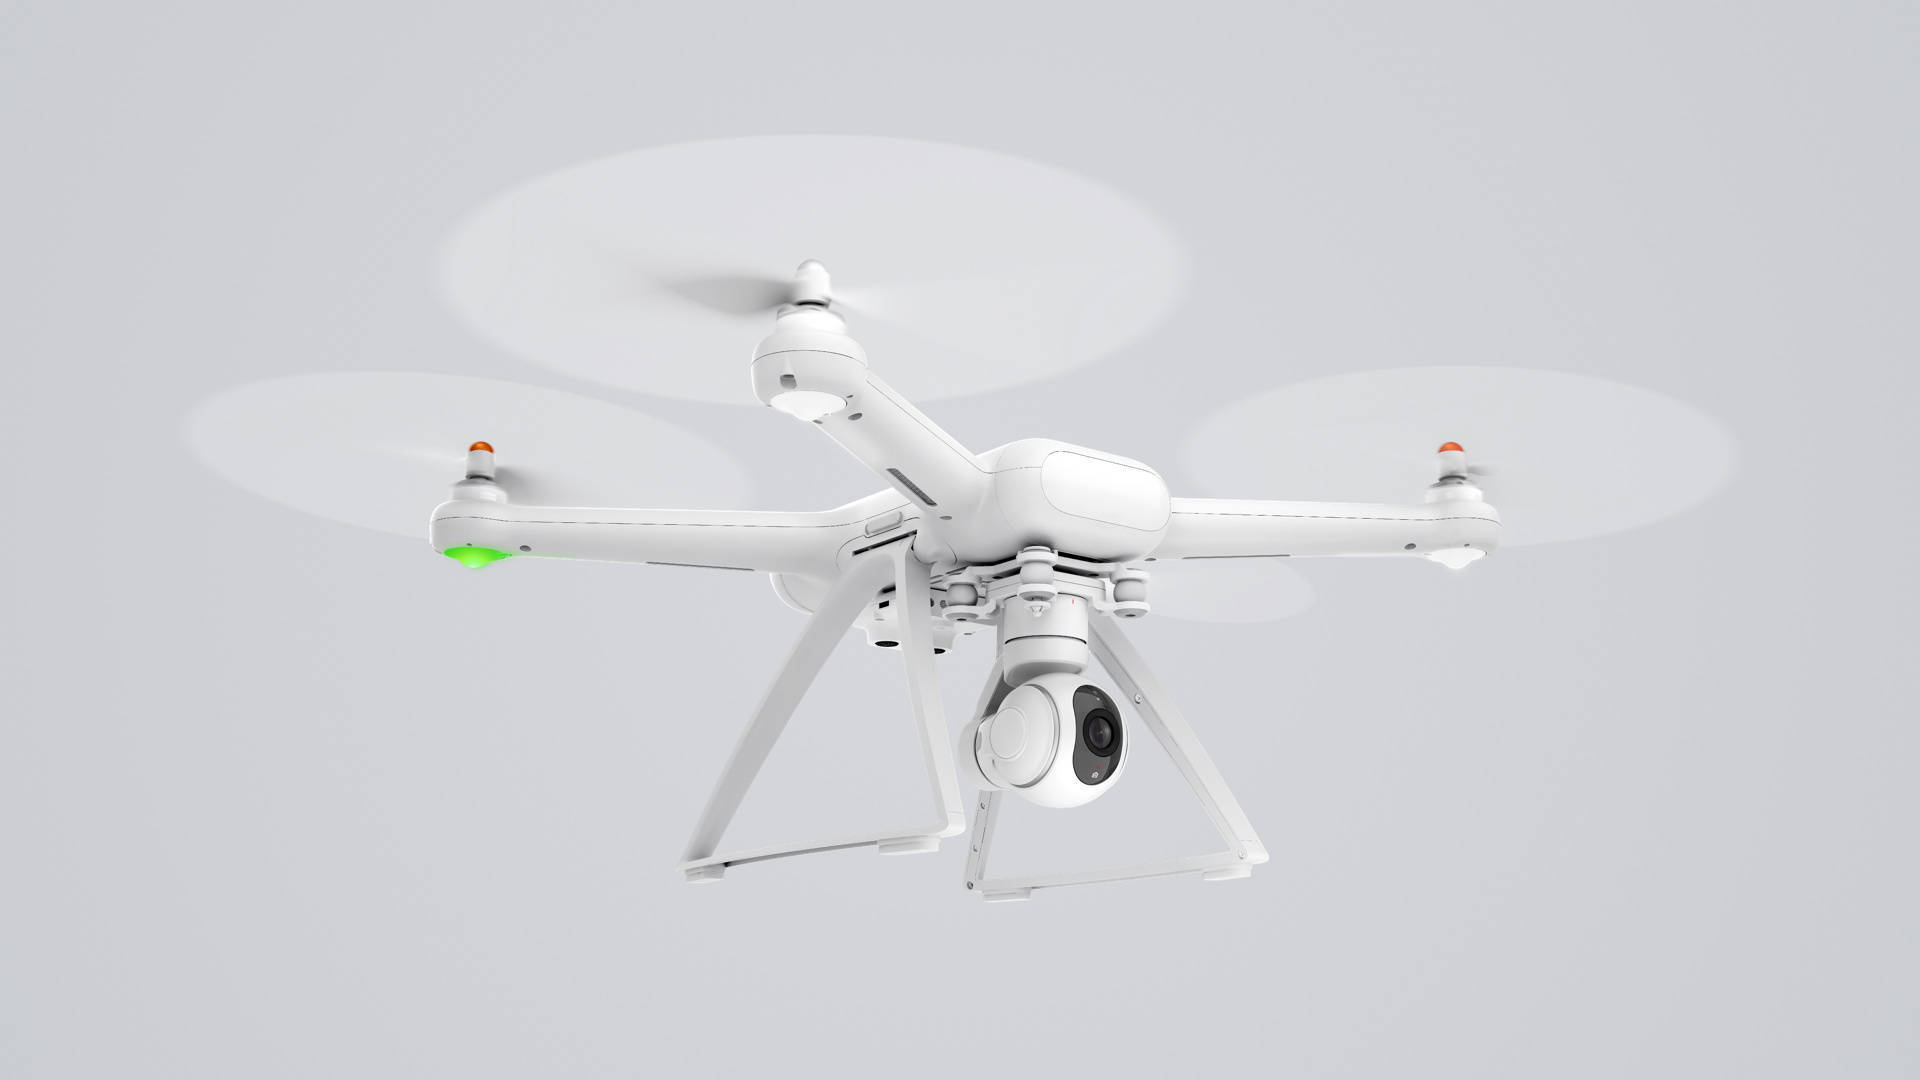 http://www.blogcdn.com/slideshows/images/slides/390/275/6/S3902756/slug/l/xiaomi-mi-drone-side-1.jpg